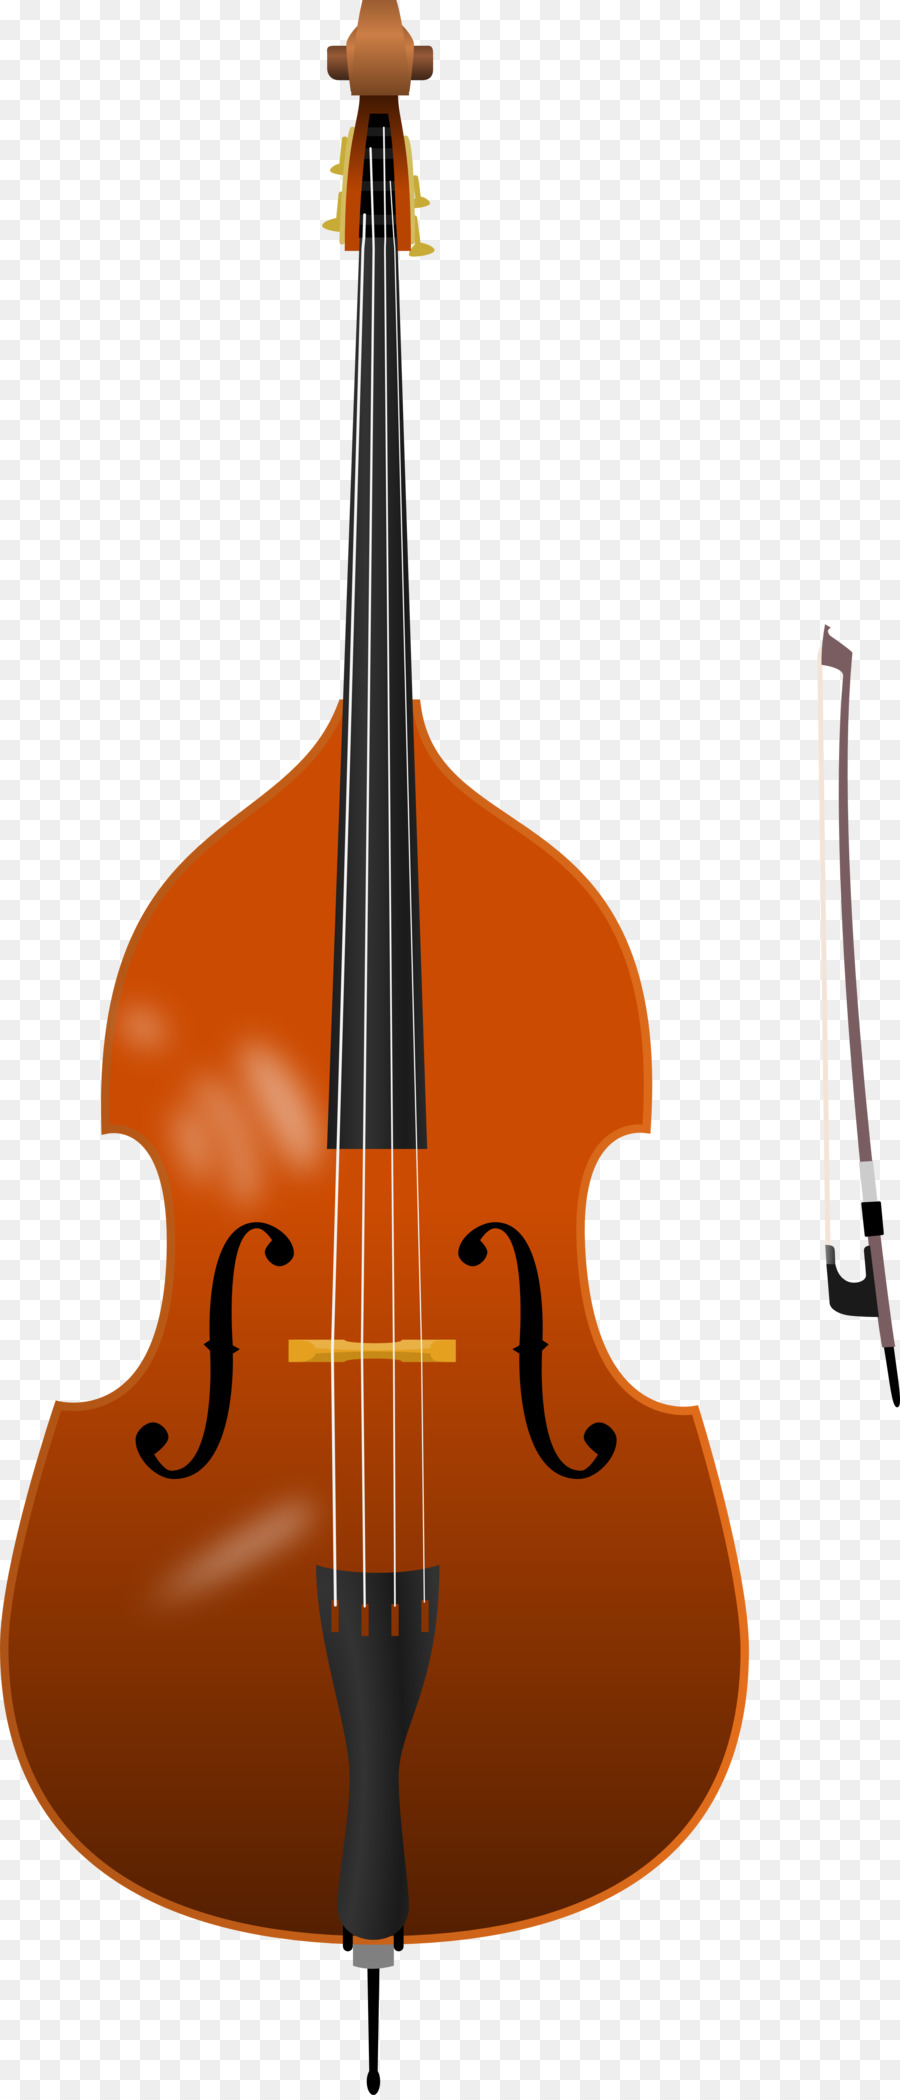 Upright bass clipart philip martin vector Bass clipart free download on WebStockReview vector